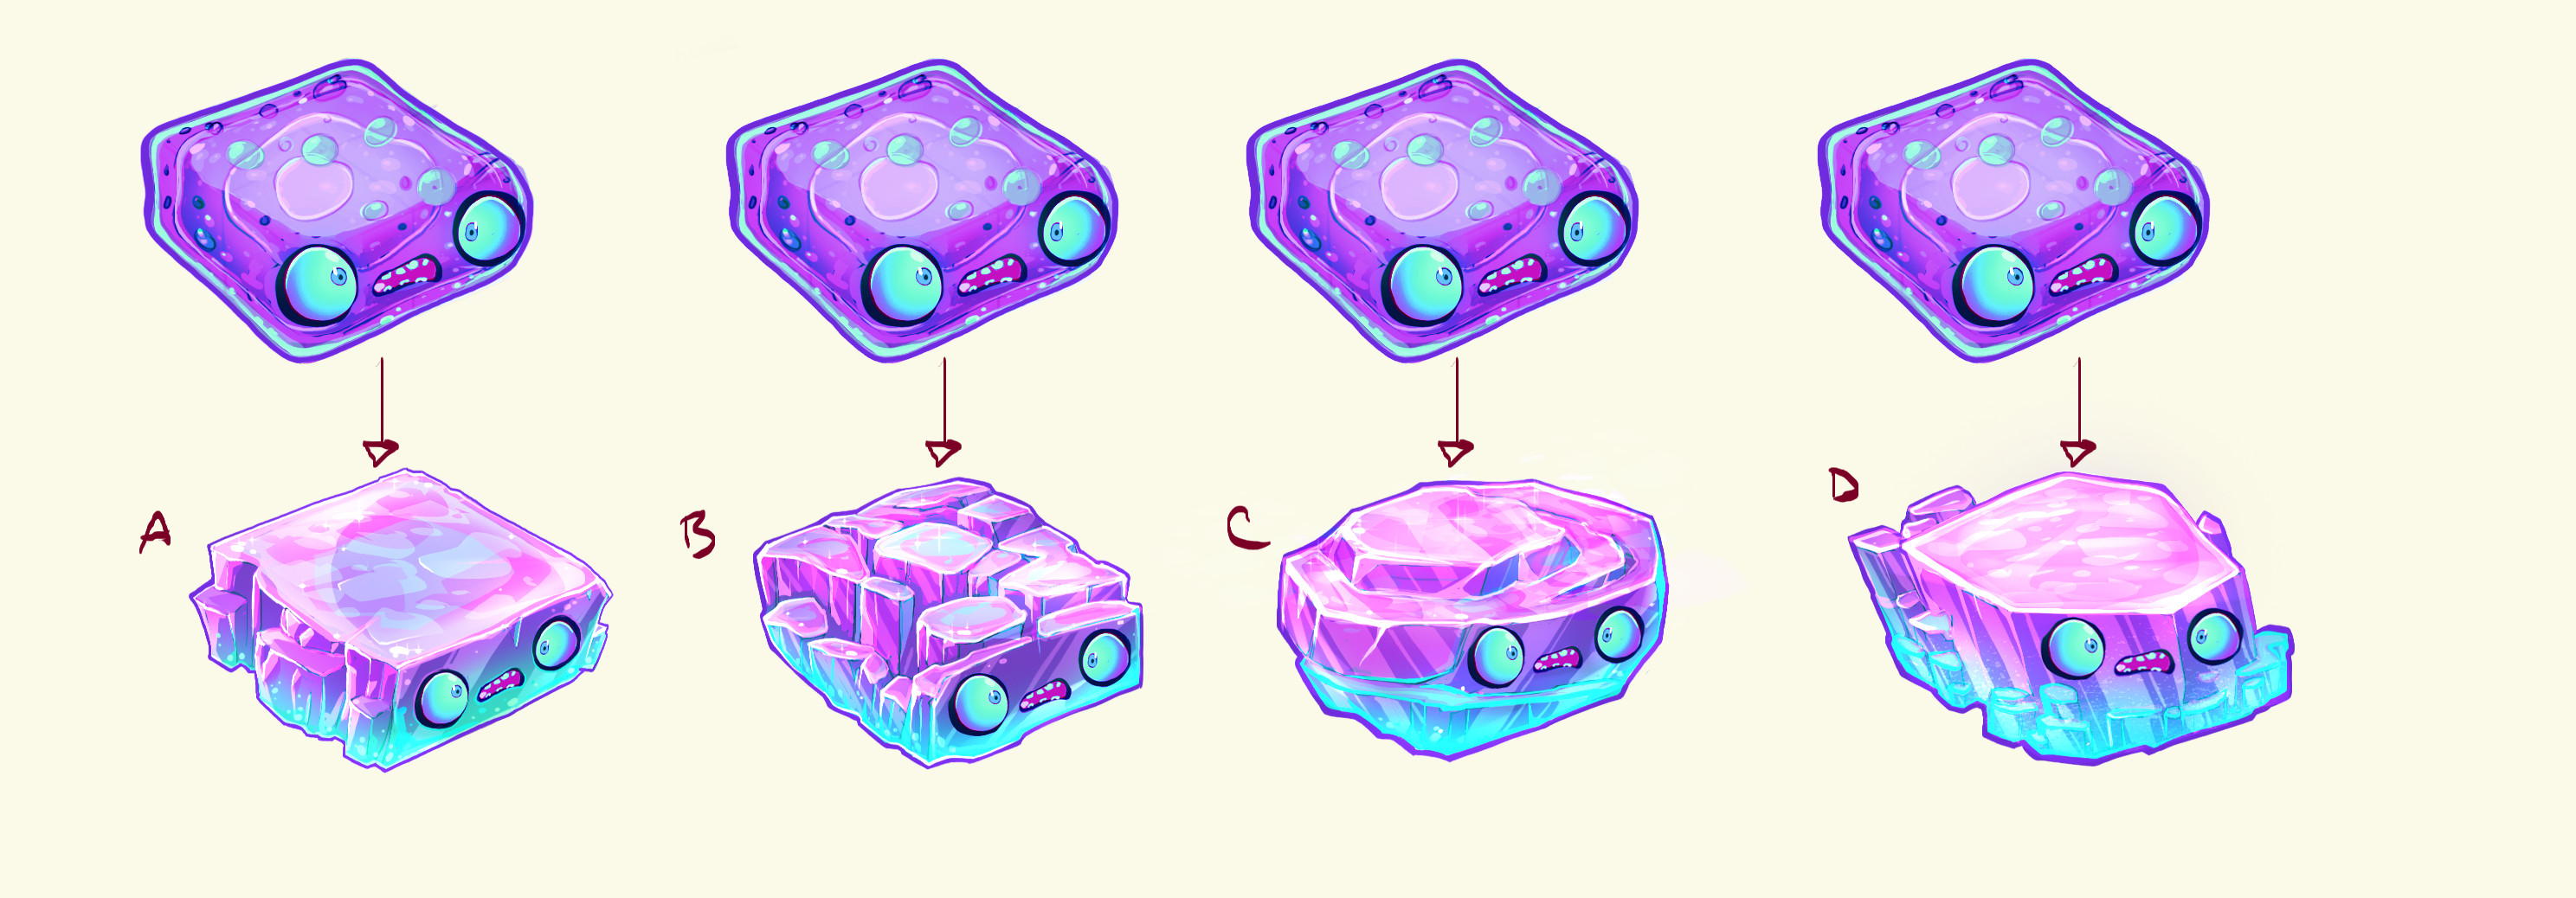 Final ideations for Neo Cortexs' weapon. Jelly mode on top, solid options on bottom.